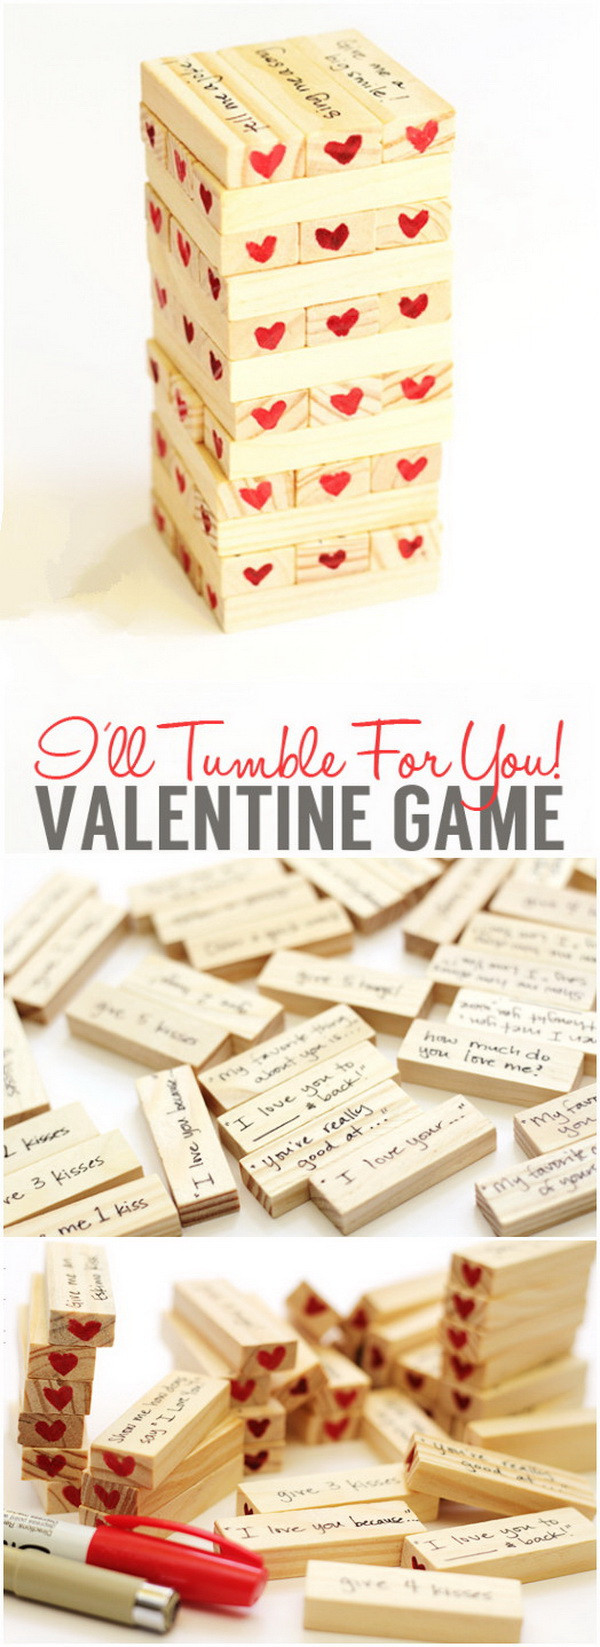 Valentine Boyfriend Gift Ideas  Easy DIY Valentine s Day Gifts for Boyfriend Listing More